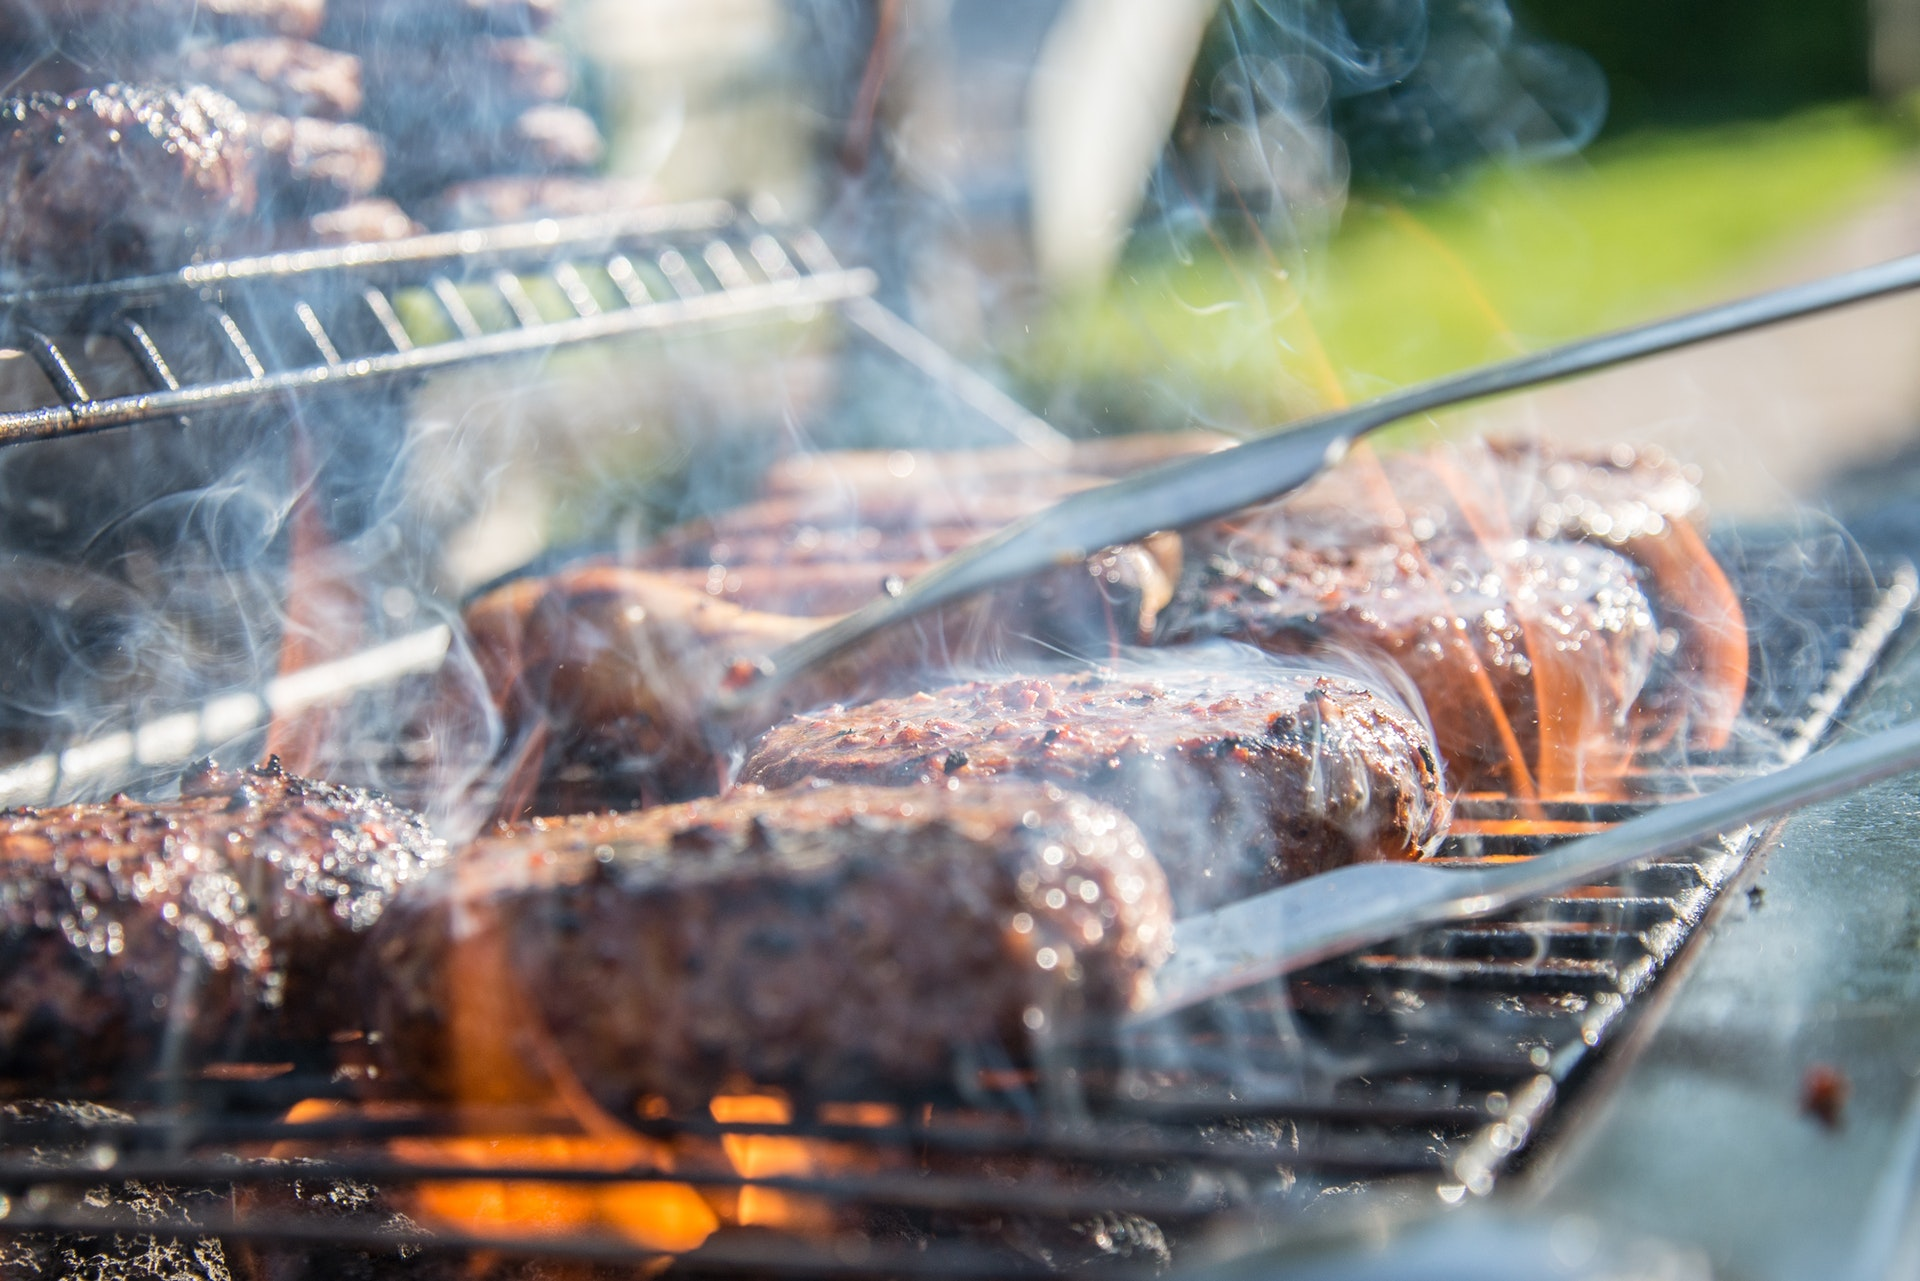 Barbeque & Grilling